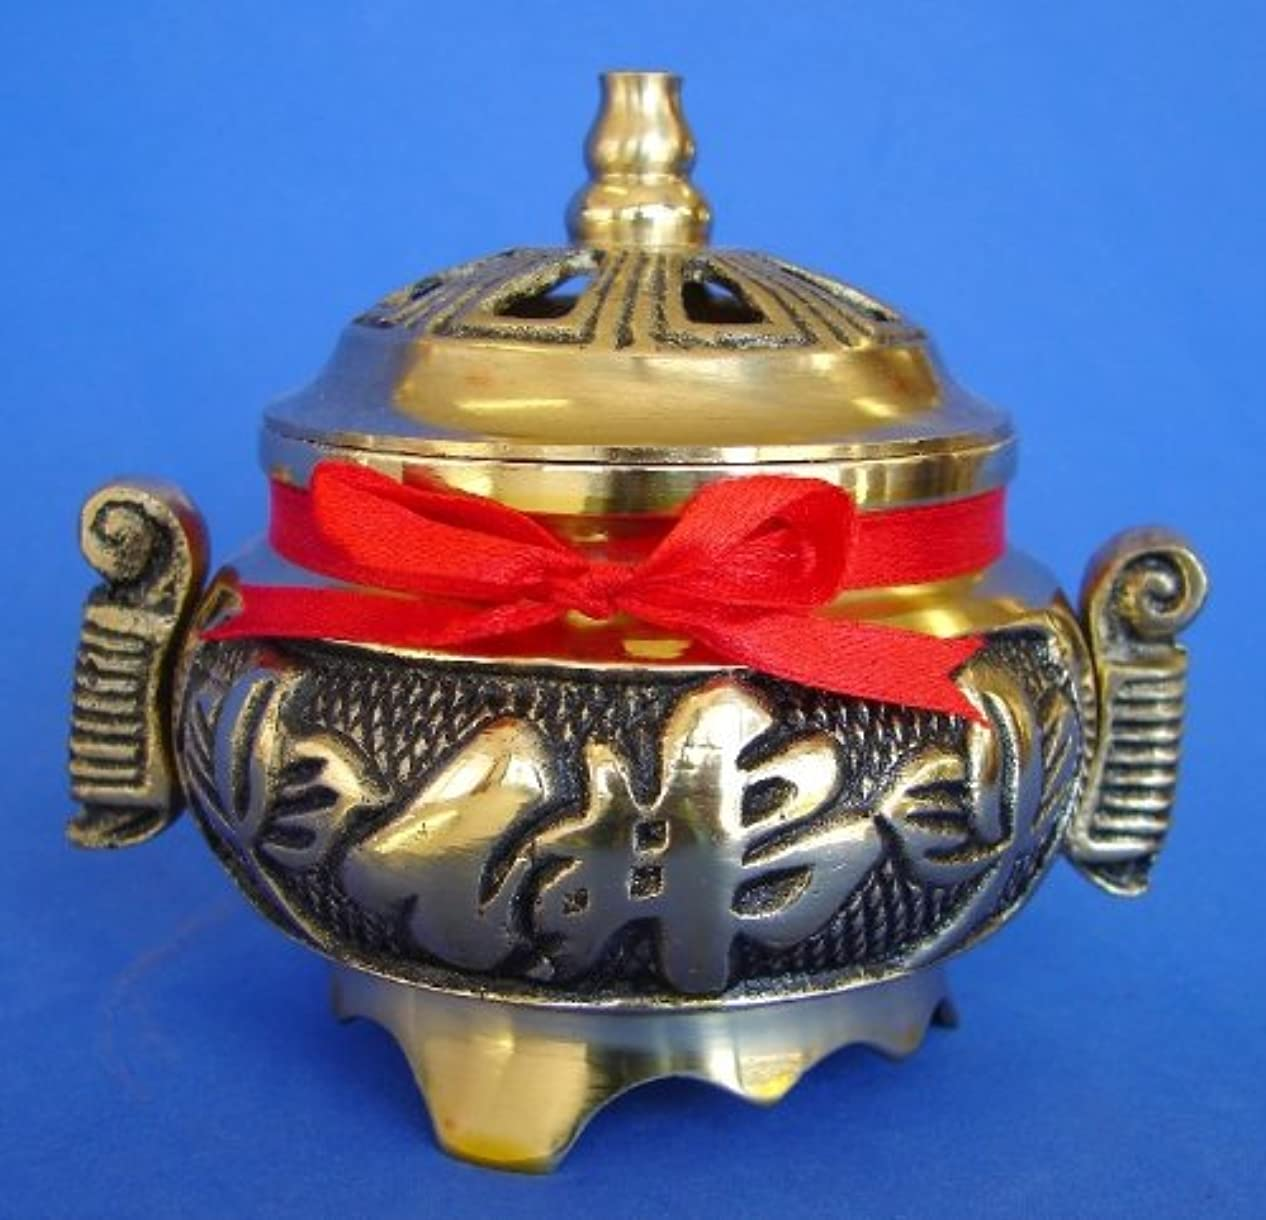 ベックス力学フェンスBrass Incense Burner for Cone Incenses